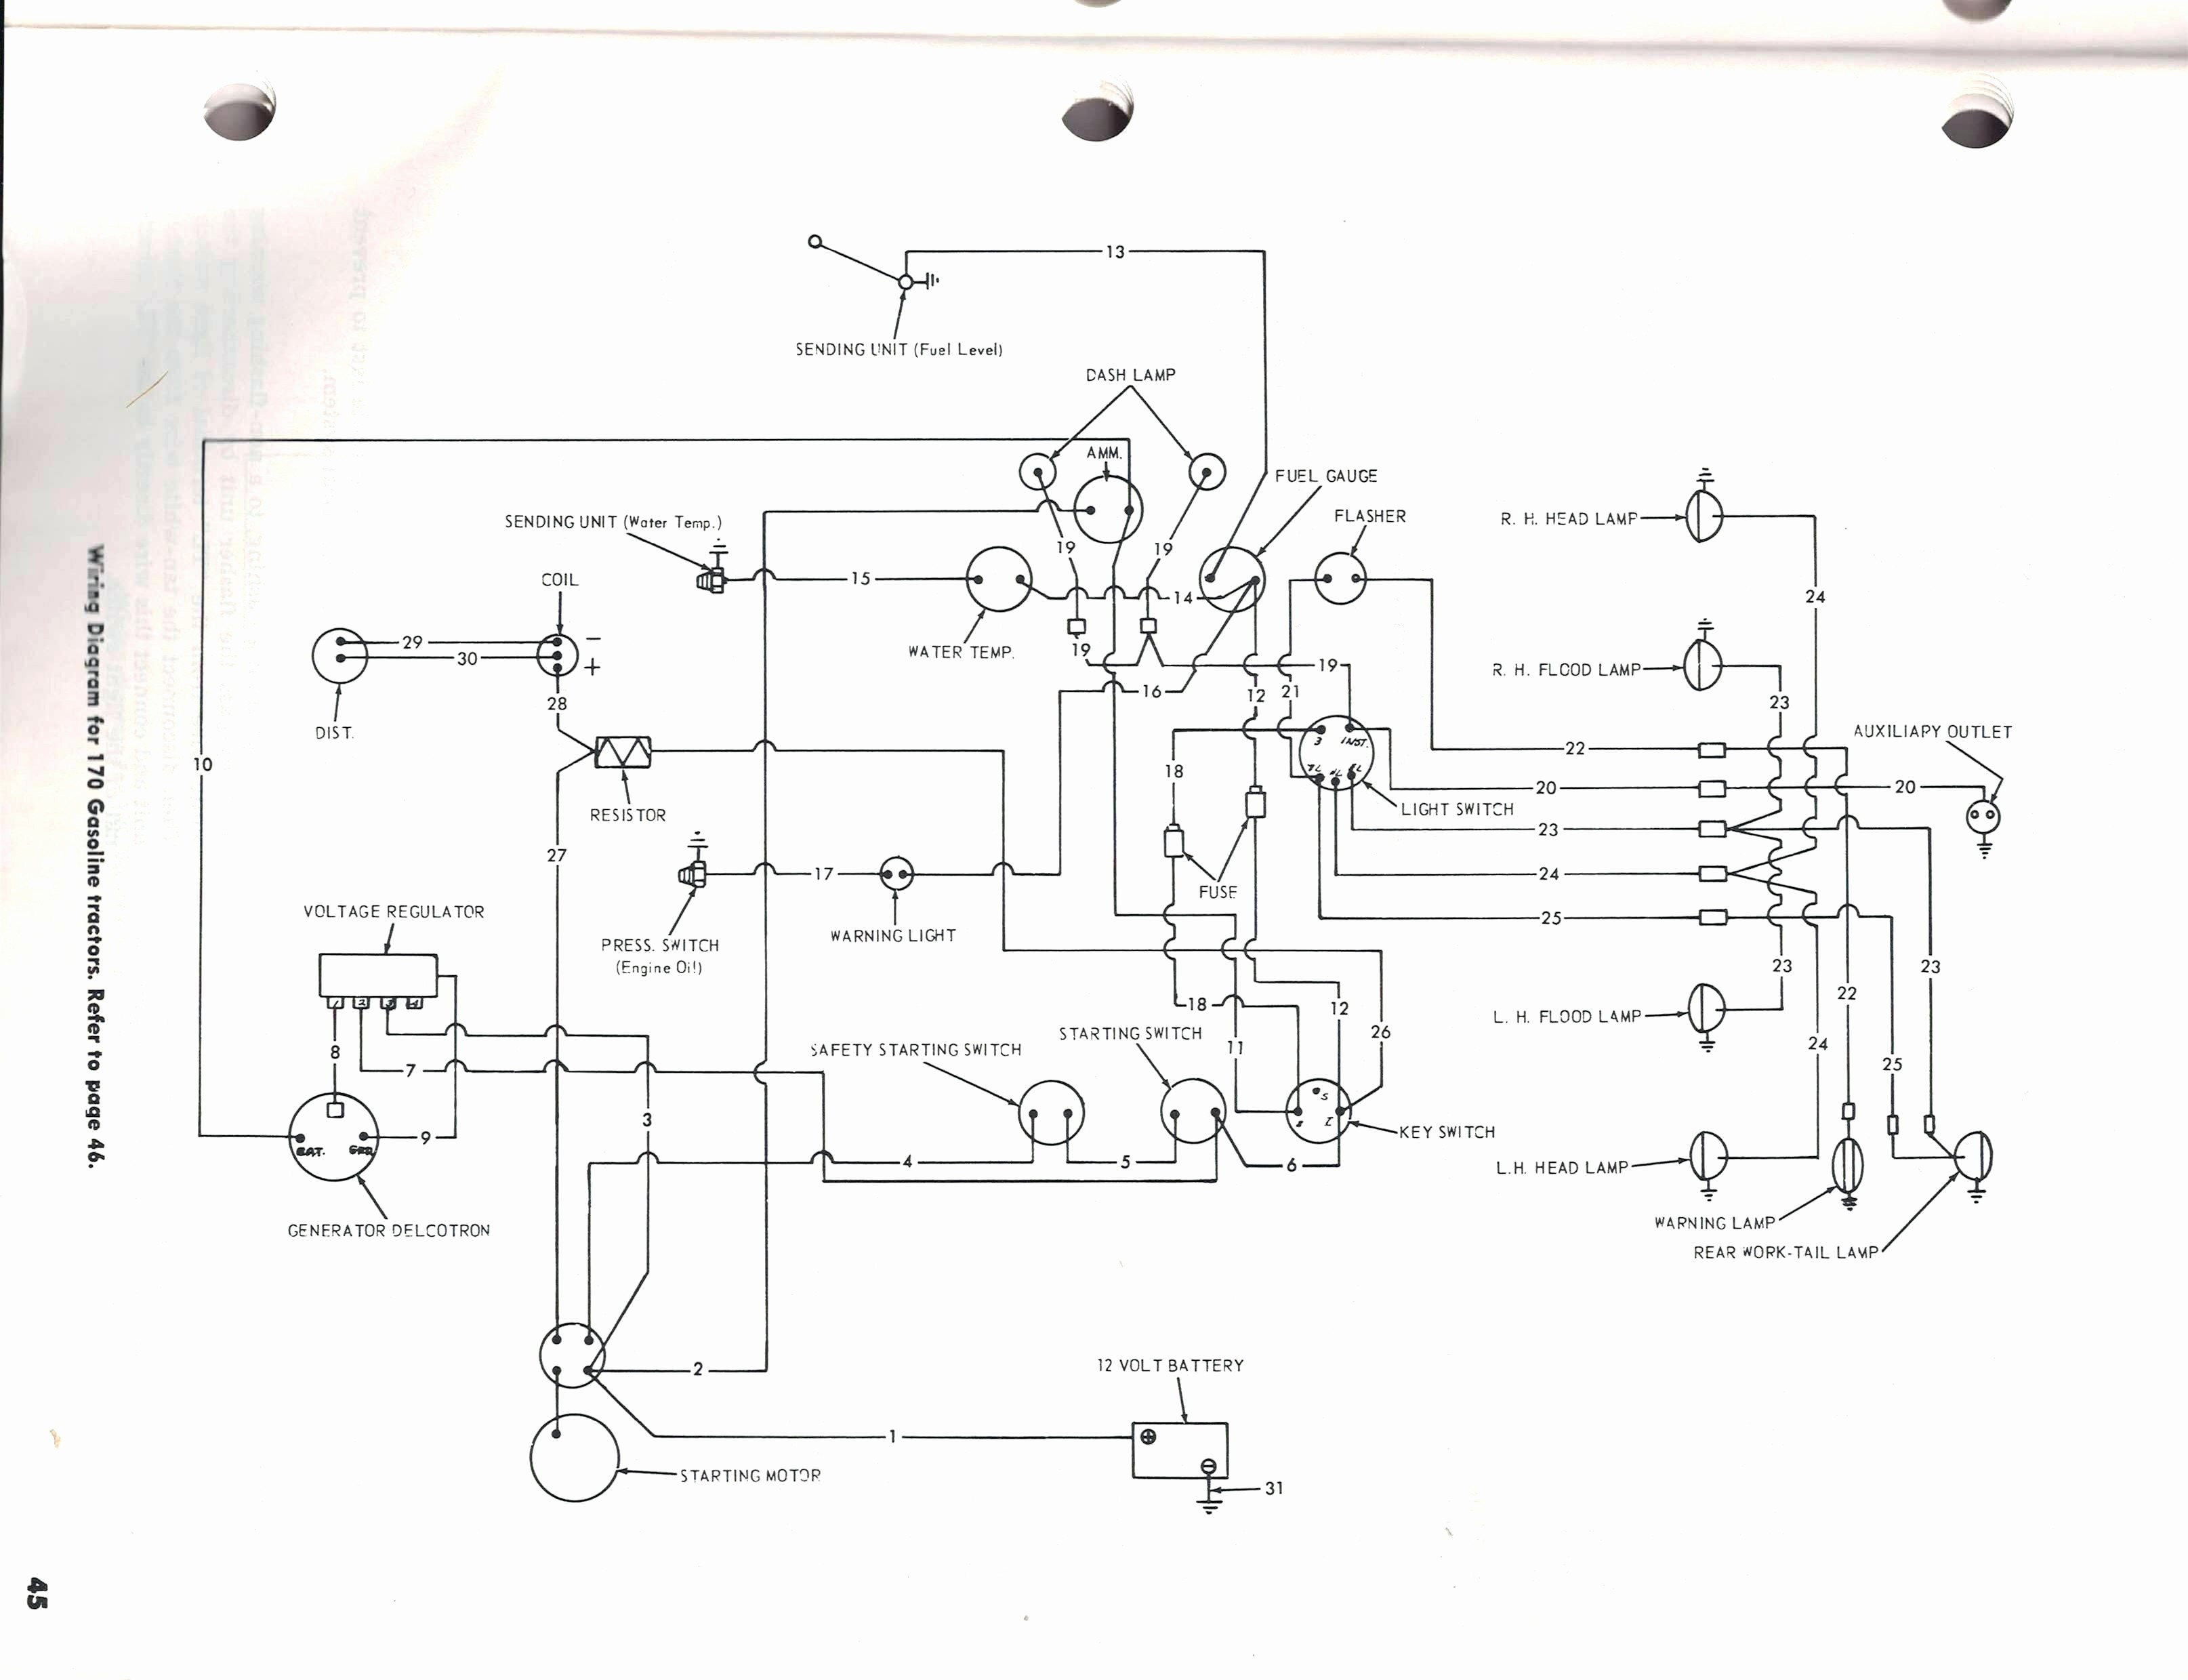 9n ford tractor wiring diagram awesome 8n ford tractor wiring diagram download of 9n ford tractor wiring diagram 1956 ford tractor wiring wiring diagram description